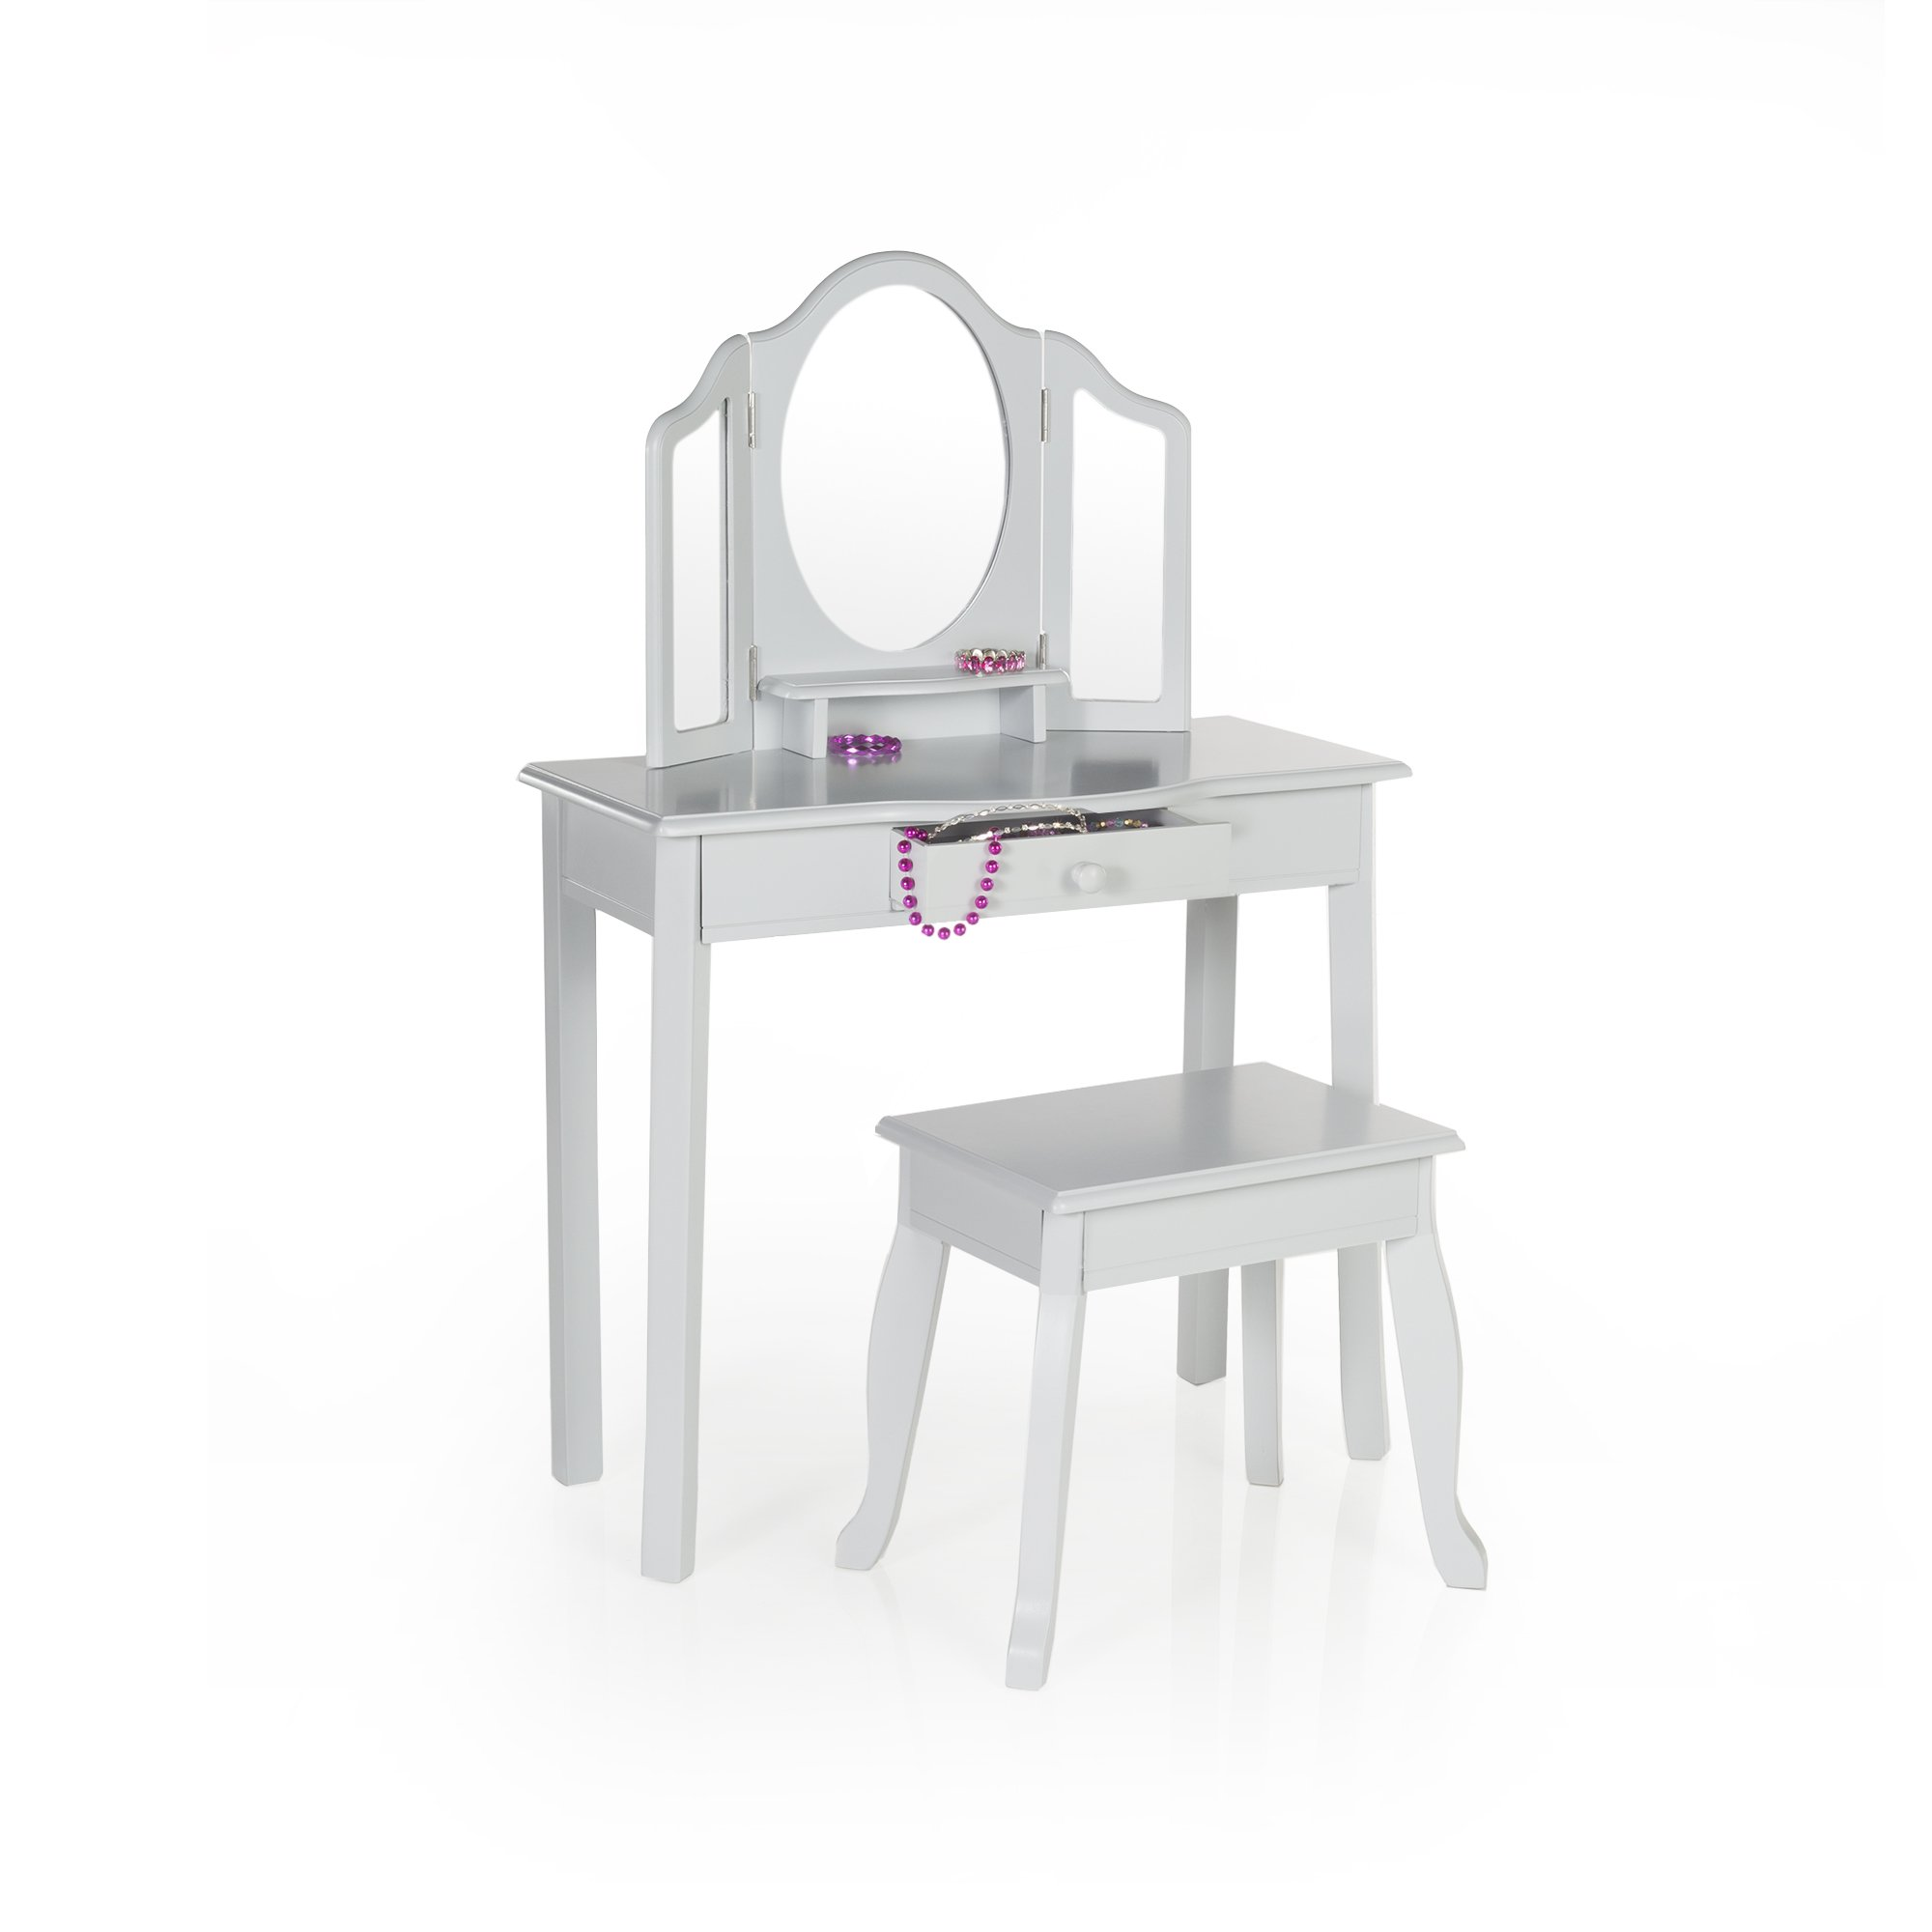 Guidecraft Vanity Table and Stool Set with Mirror and Make-Up Drawer - Children's Furniture - Grey